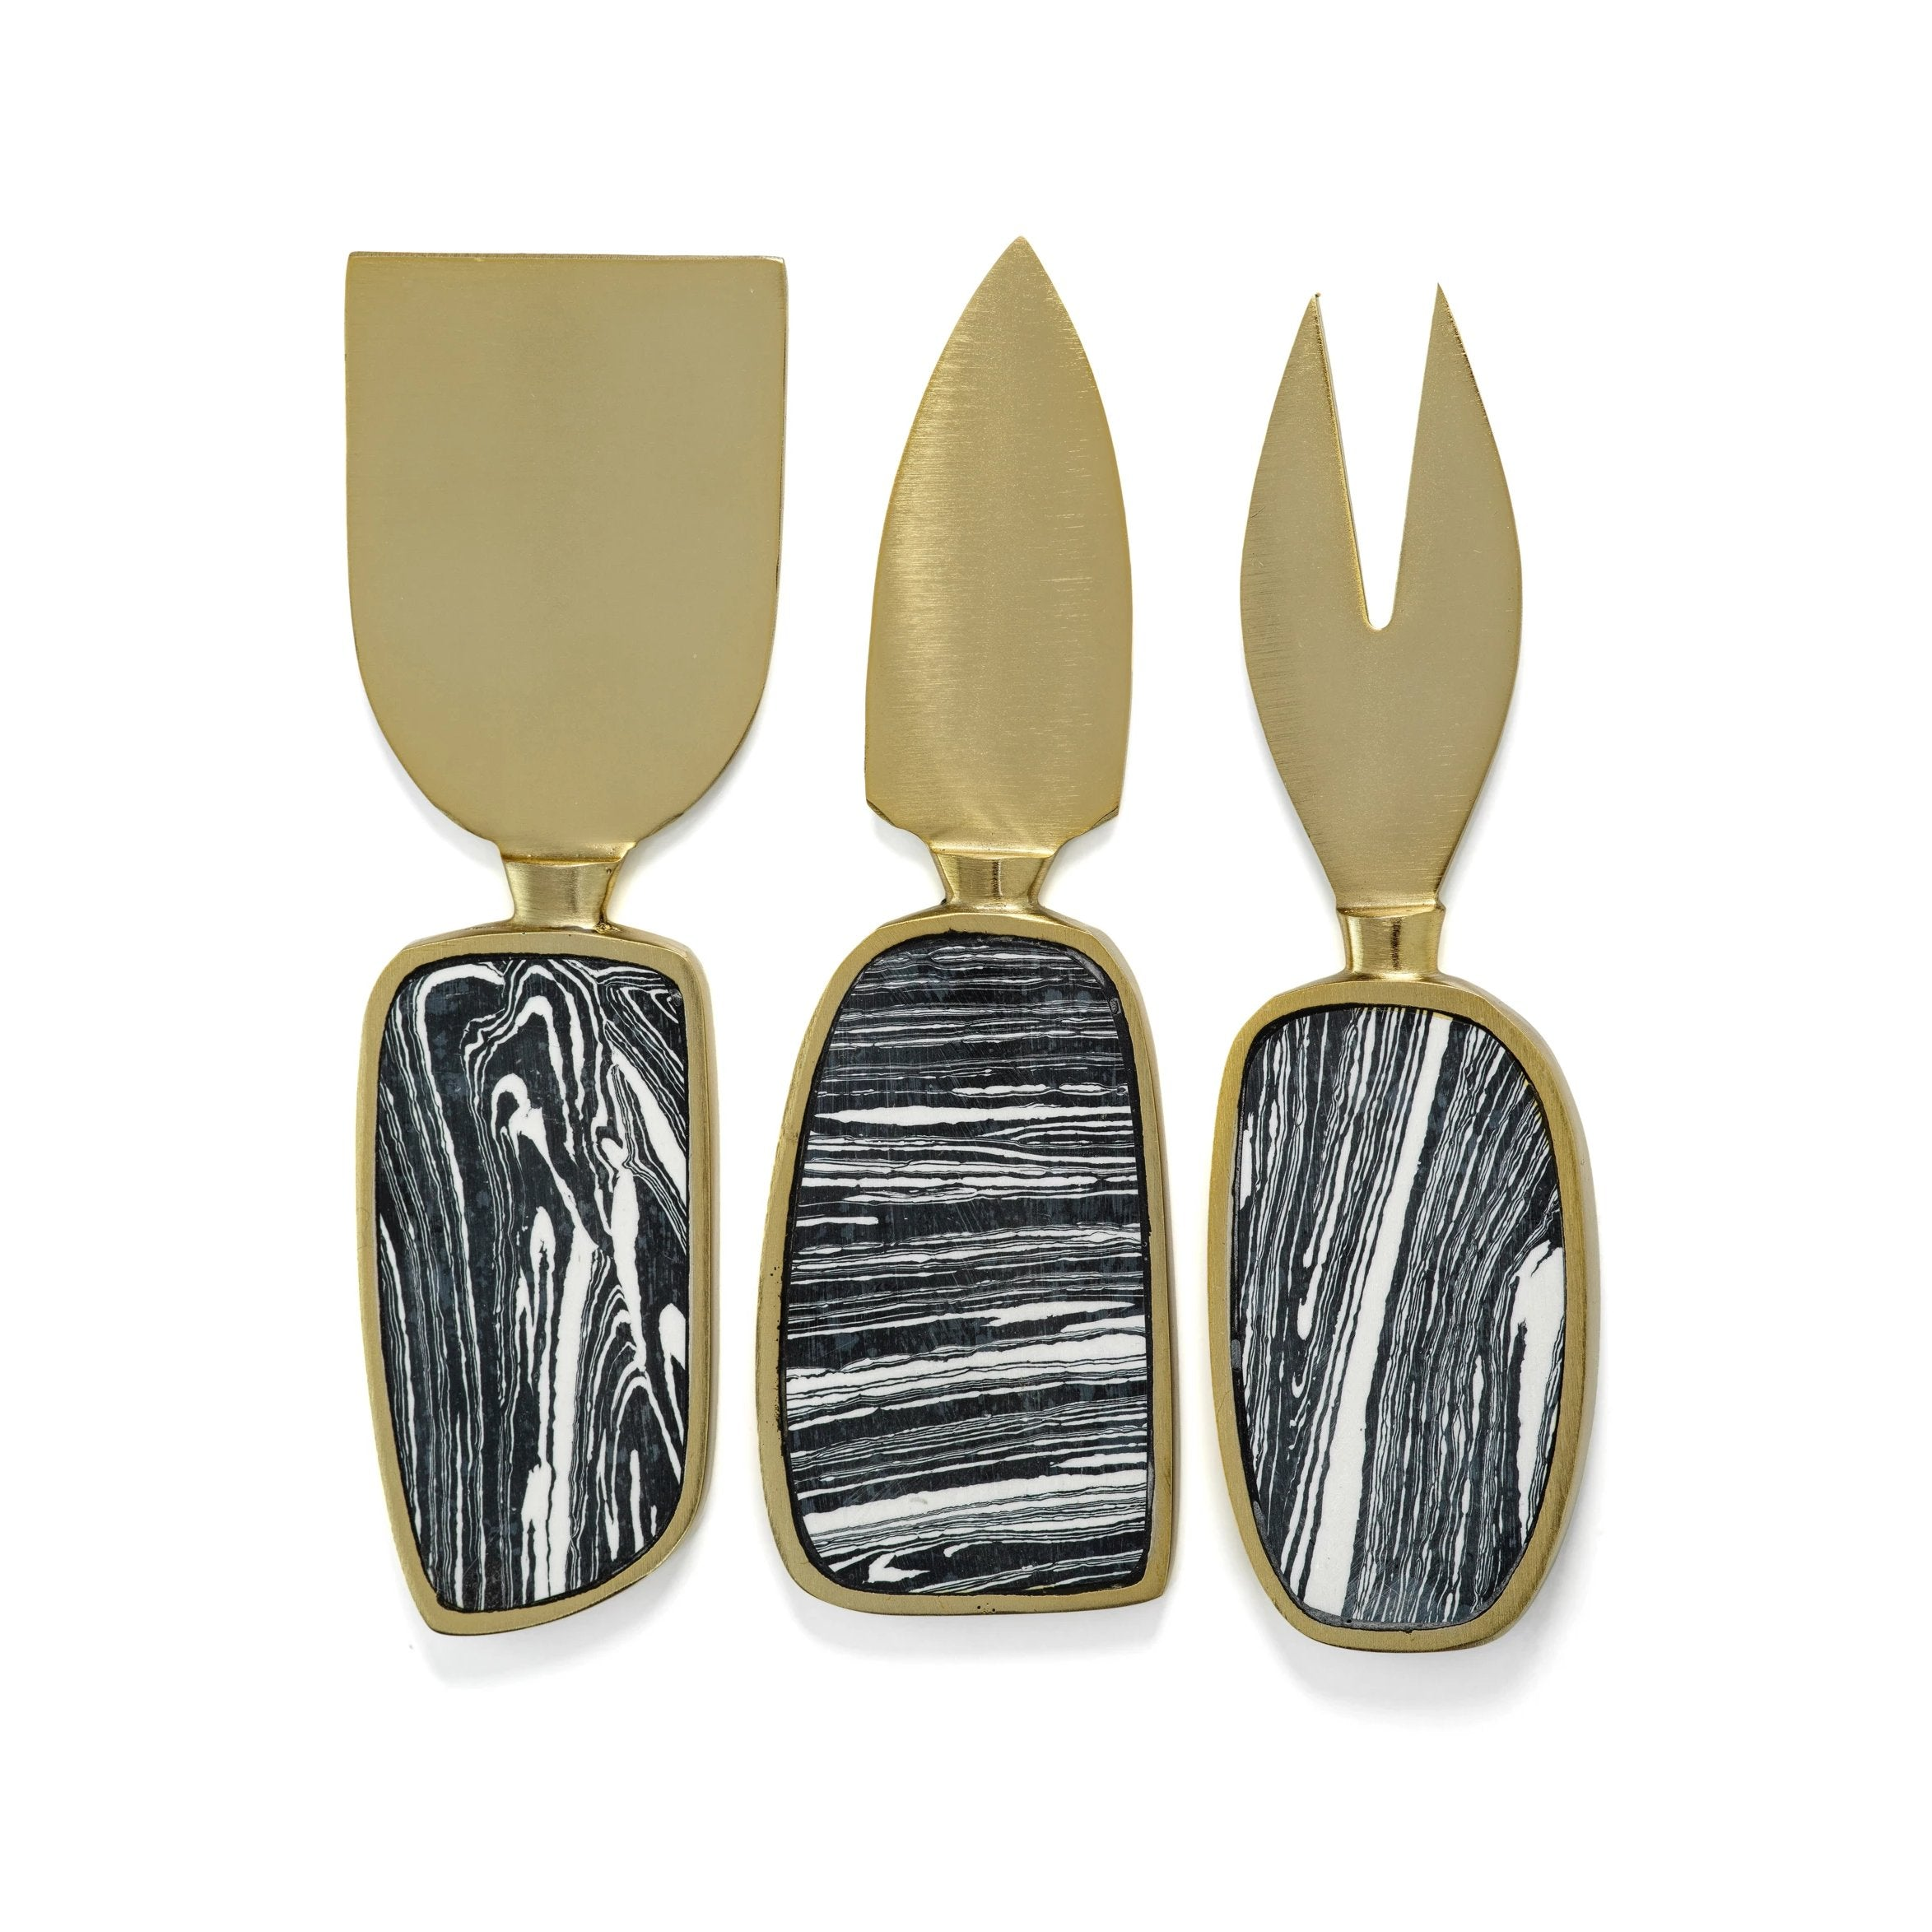 Amalfi Set/3 Cheese Tool Set - Black w/Gold